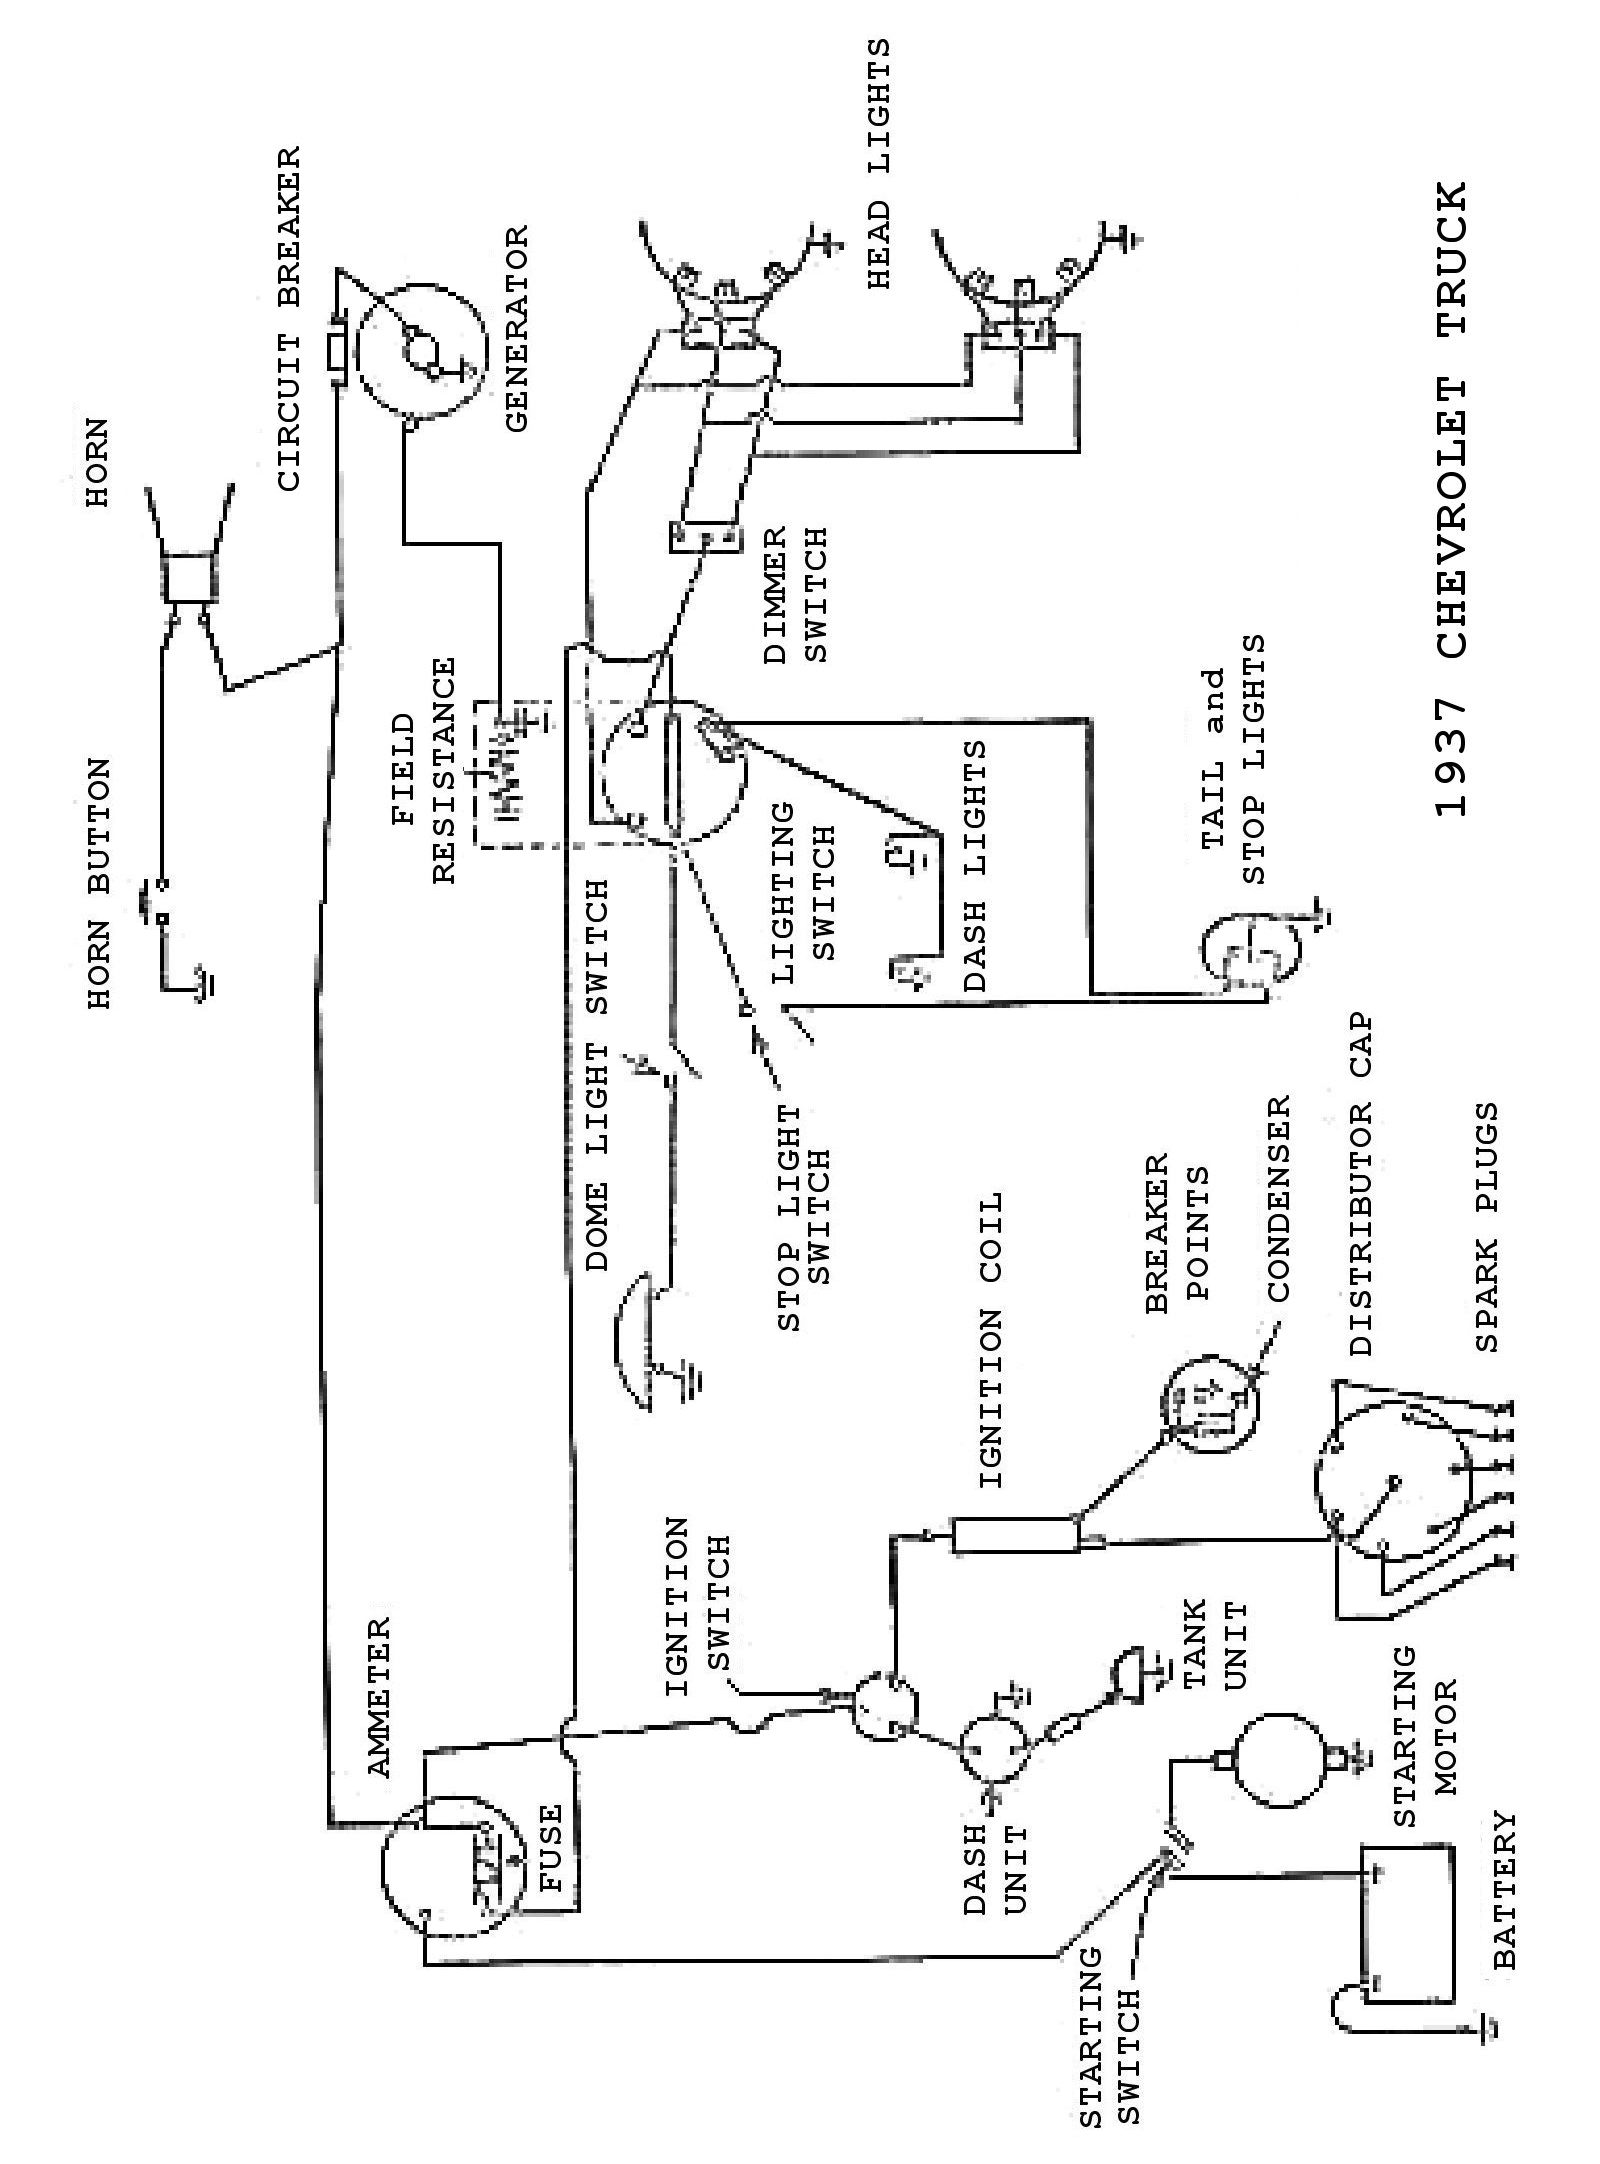 hight resolution of chevrolet 235 engine diagram wiring librarychevy wiring diagrams chevrolet 235 engine